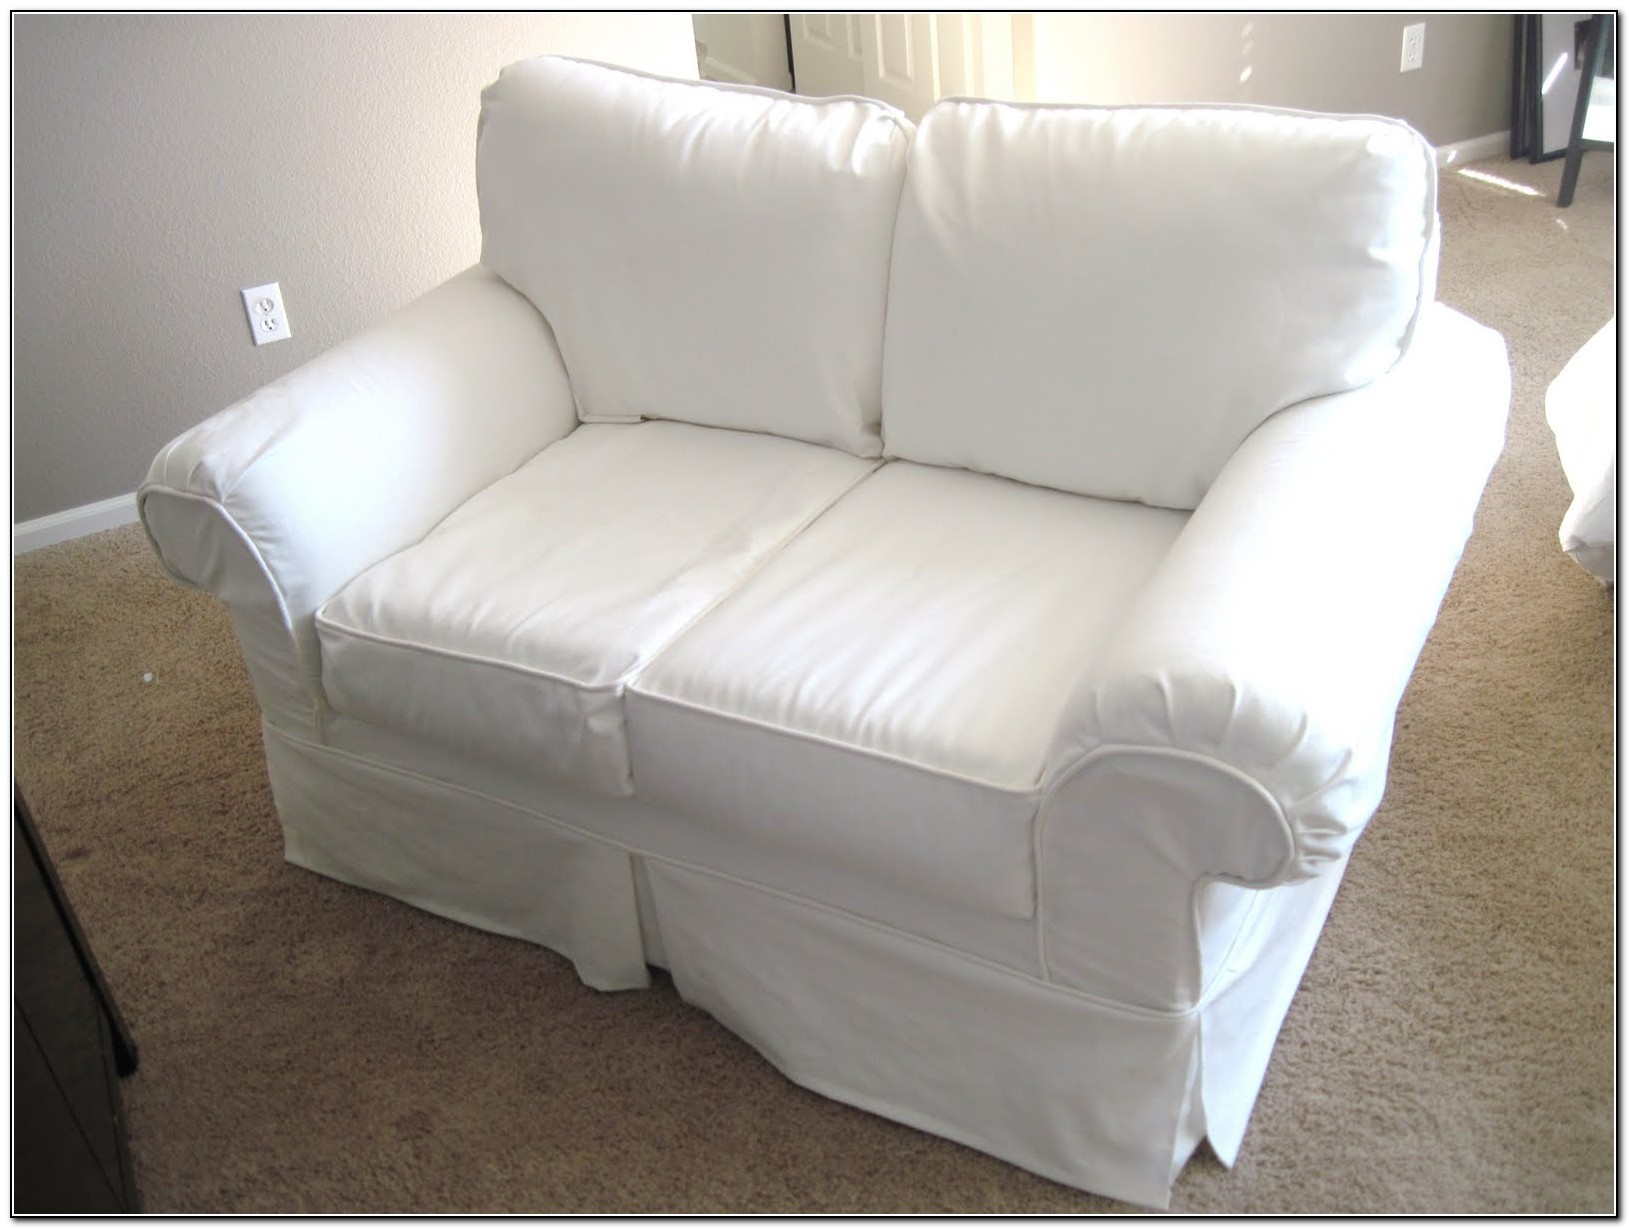 Diy sectional sofa slipcovers download page home design for Sectional sofa covers diy